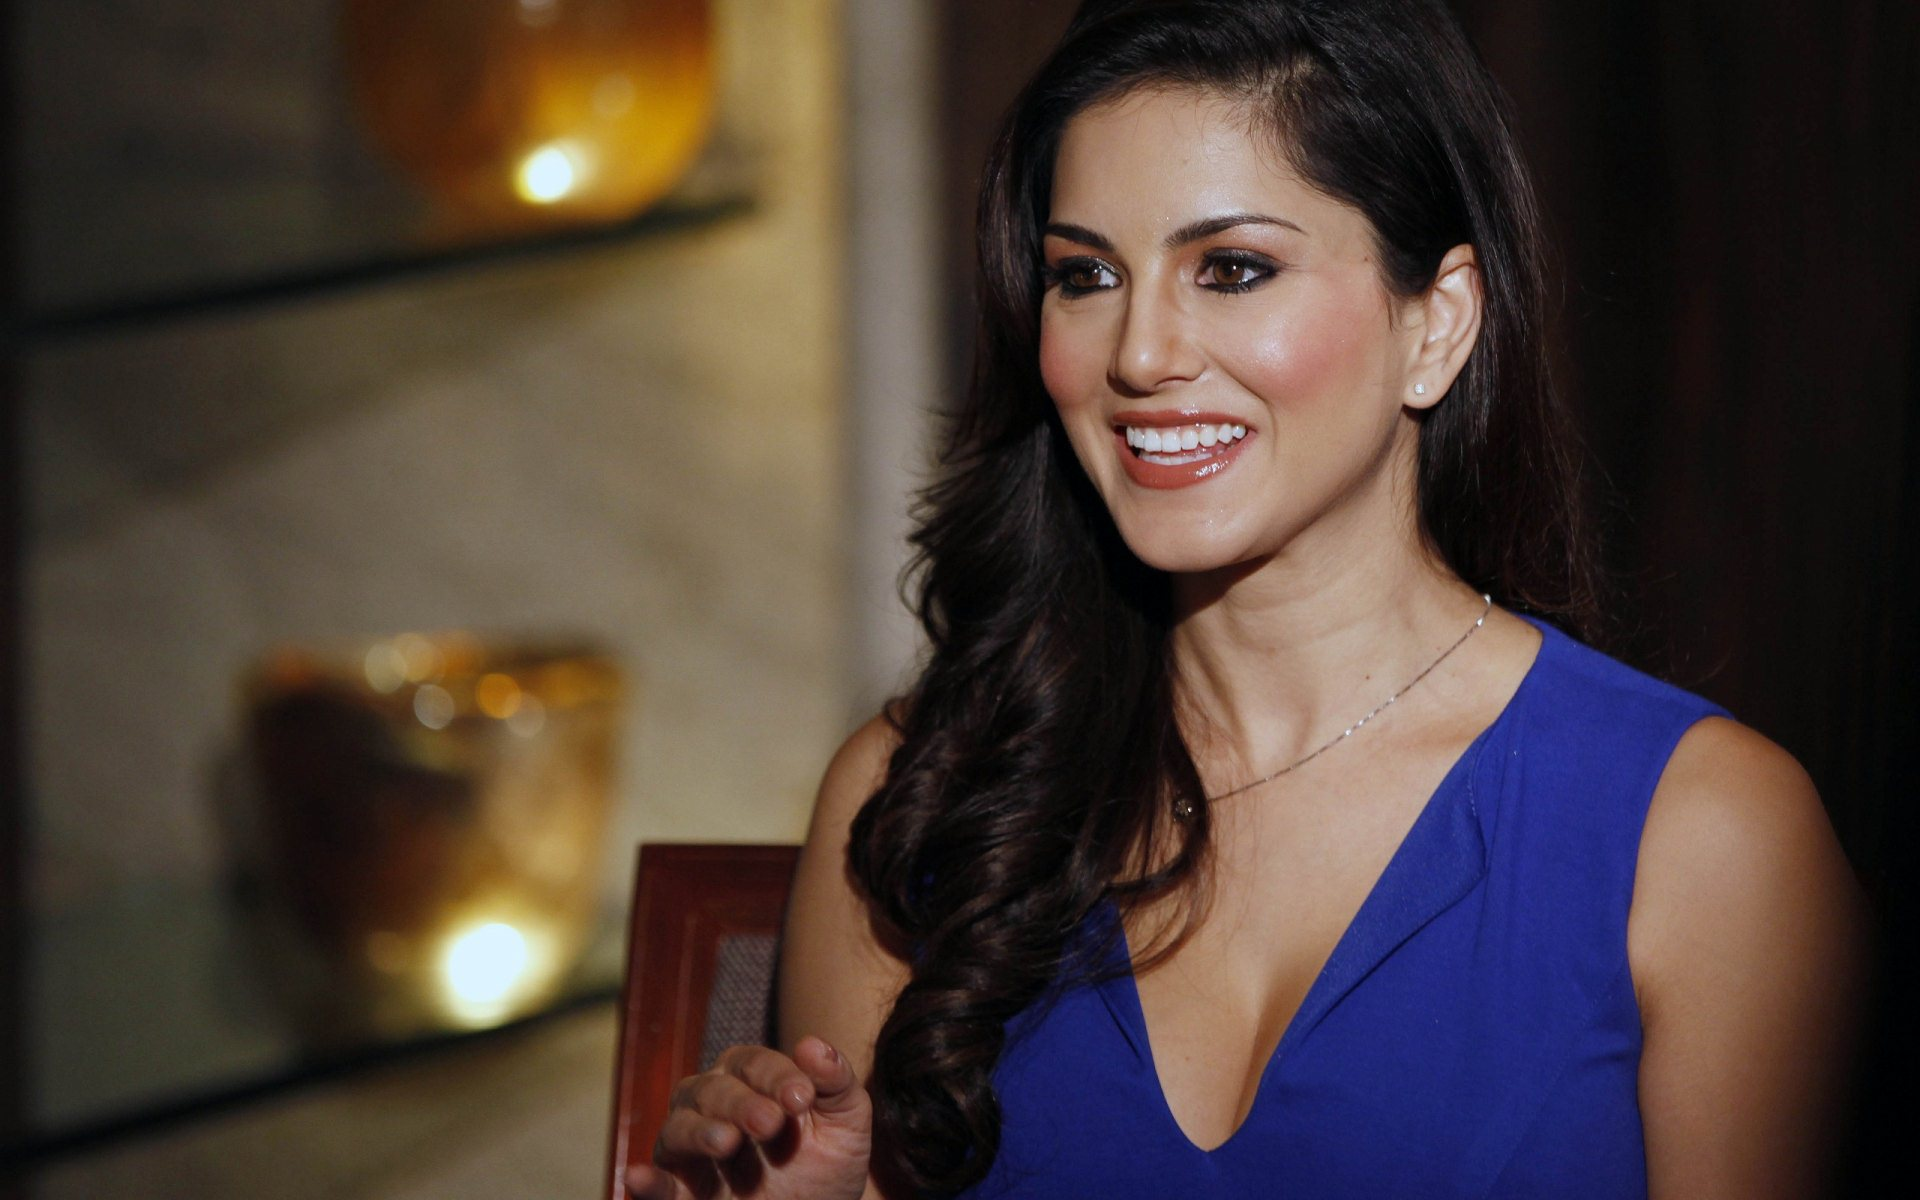 sunny leone in blue dress wallpaper | hd wallpaper background